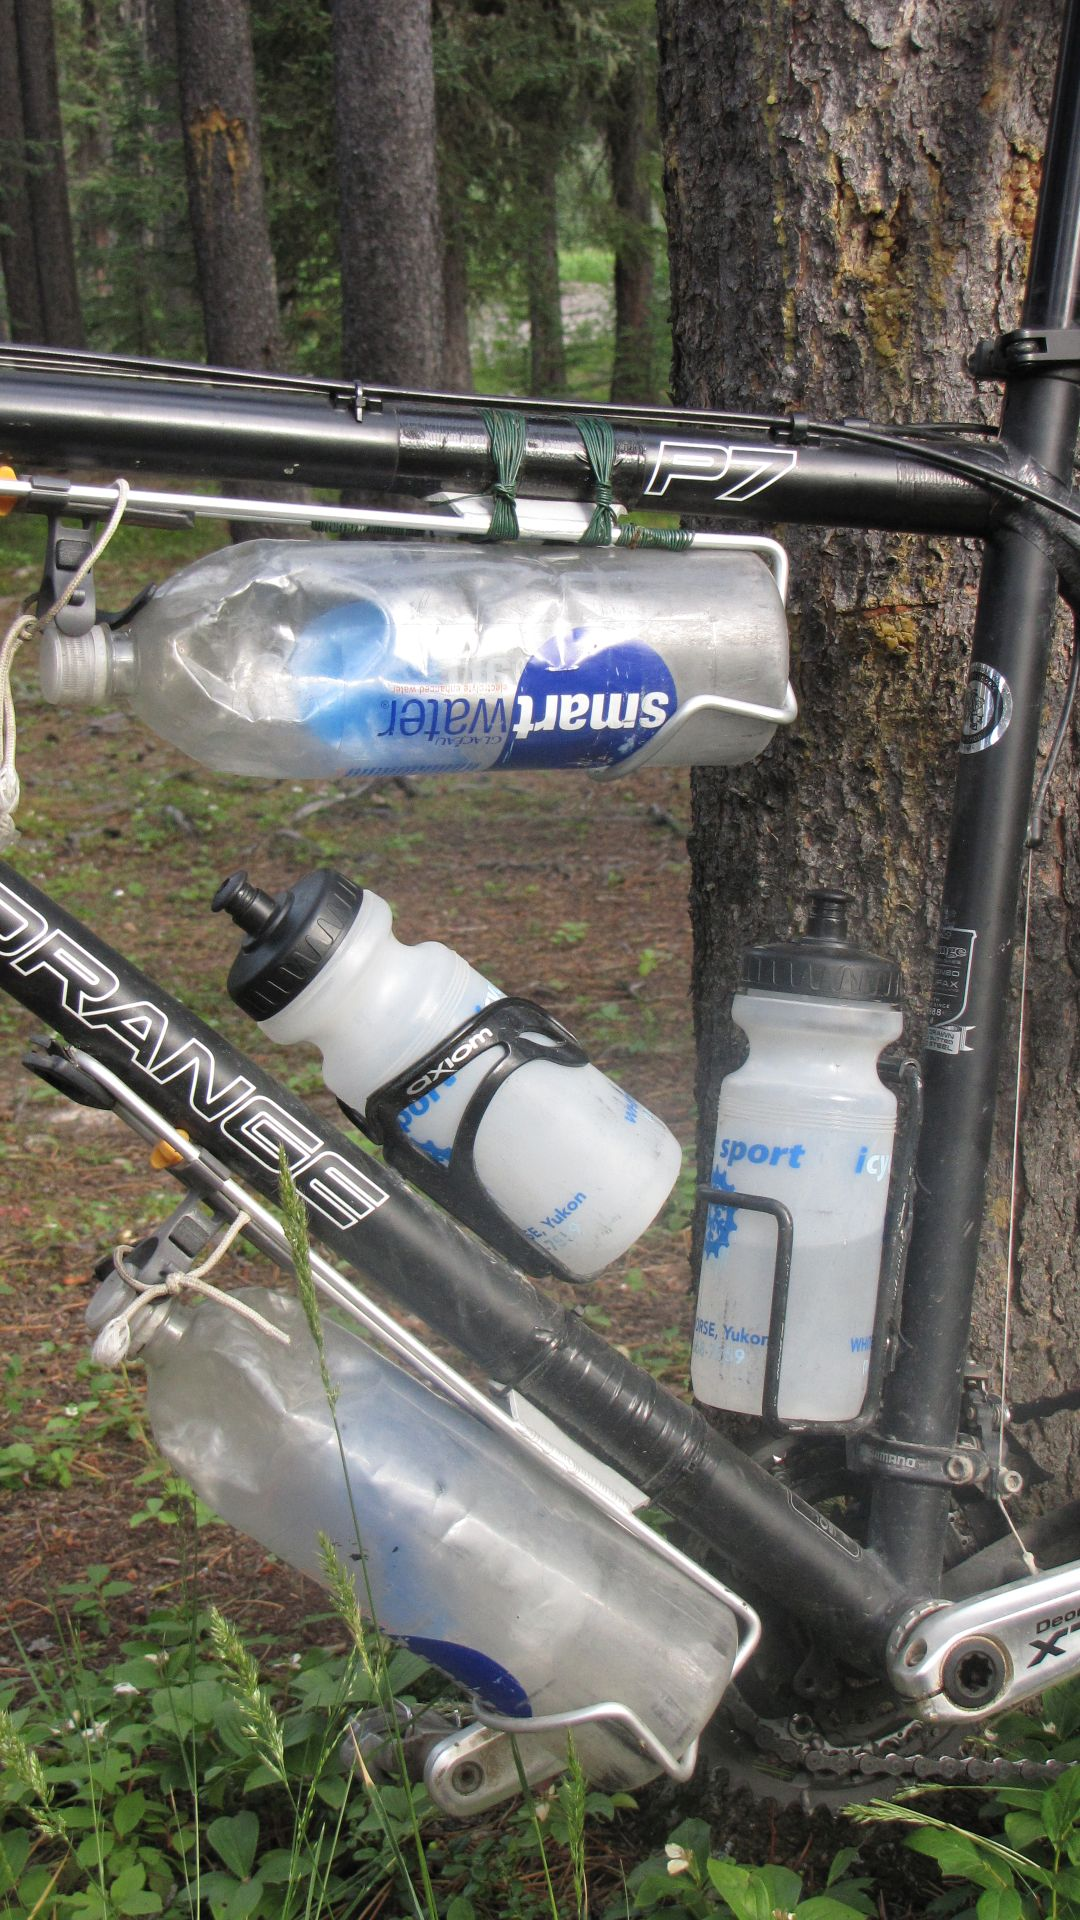 1st place in the \'how many water bottles can we attach to the frame\' contest